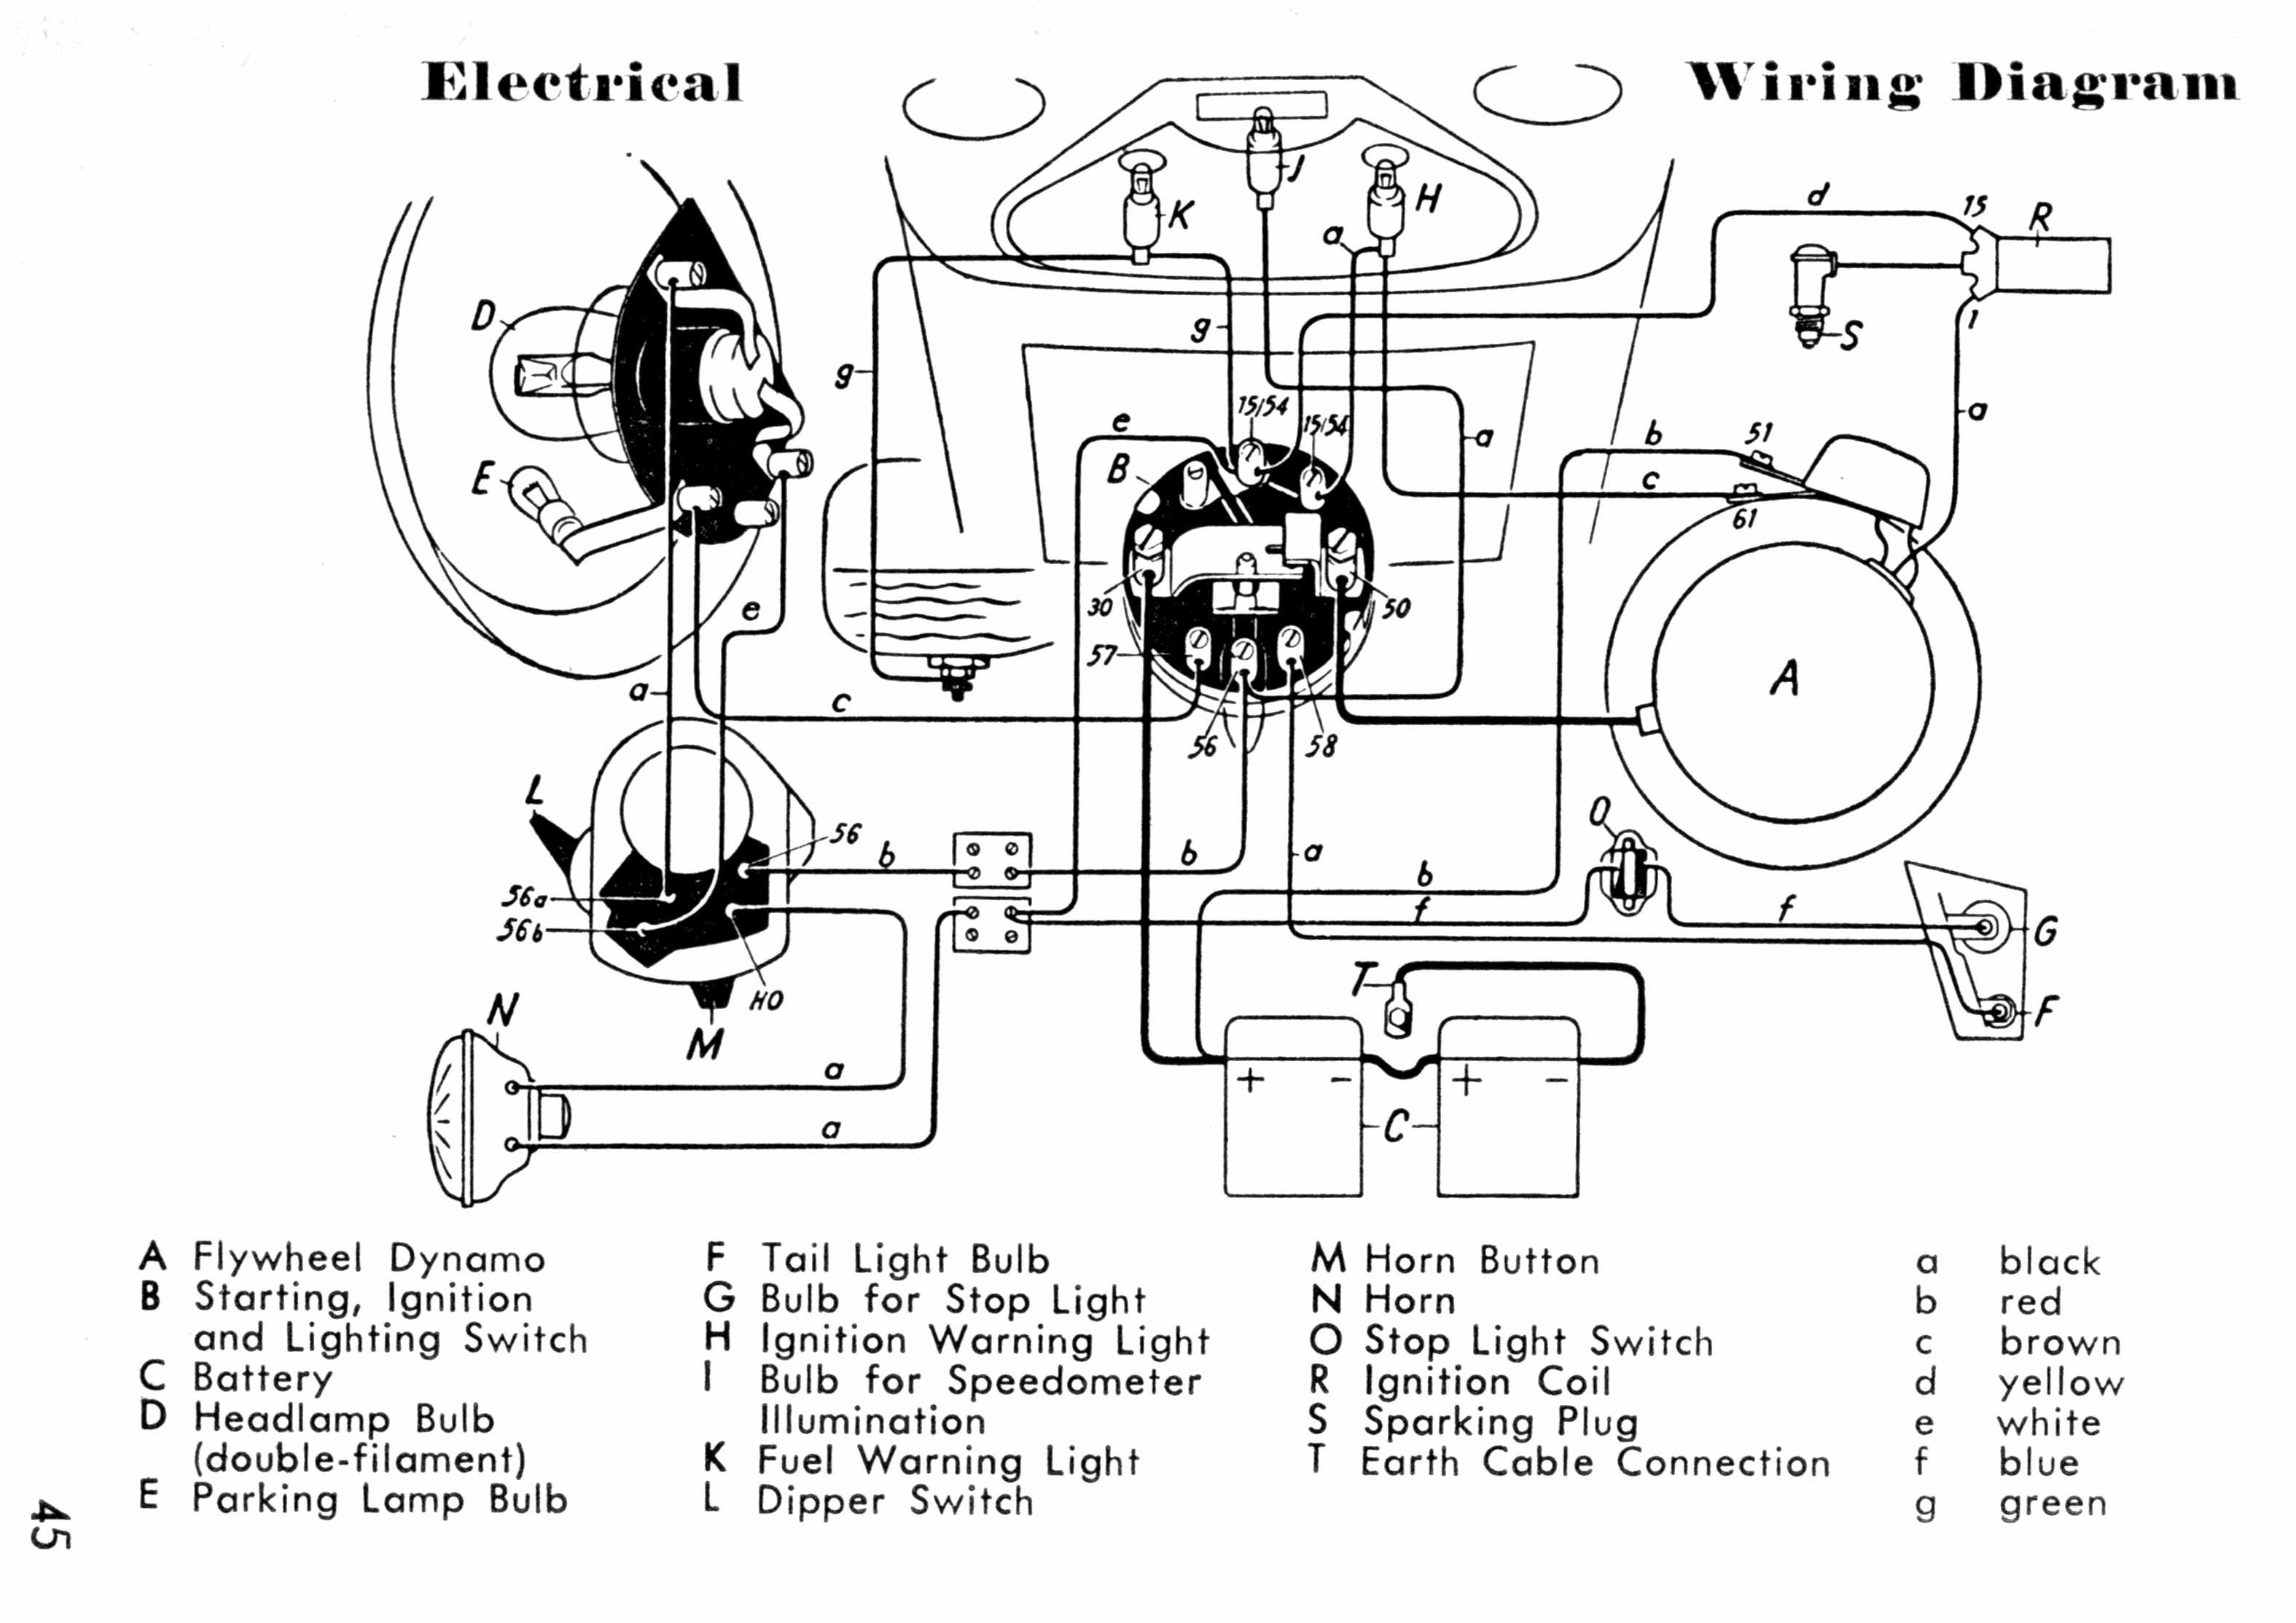 hight resolution of schematic electric scooter wiring diagram closet pinterest rh pinterest com chinese scooter ignition wiring diagram chinese scooter engine diagram